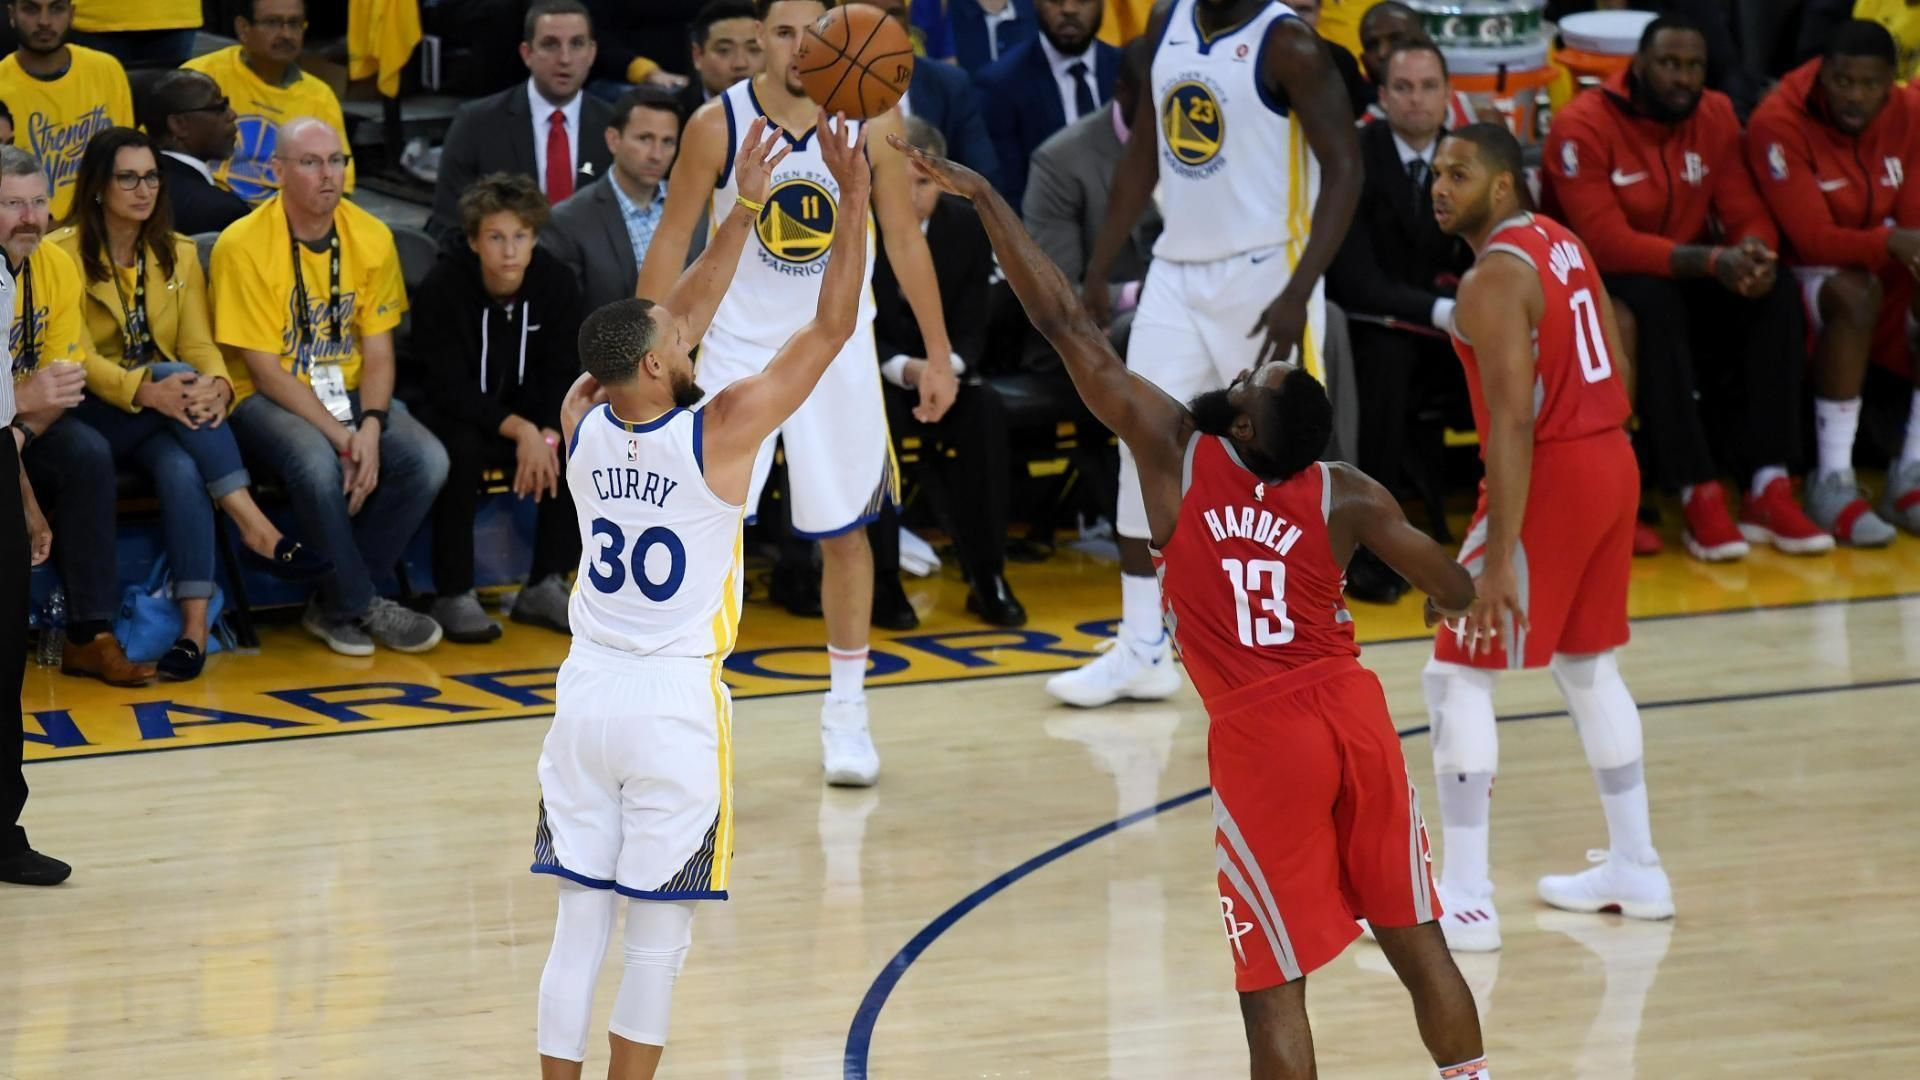 Curry shimmies after crossing up Harden for 3.